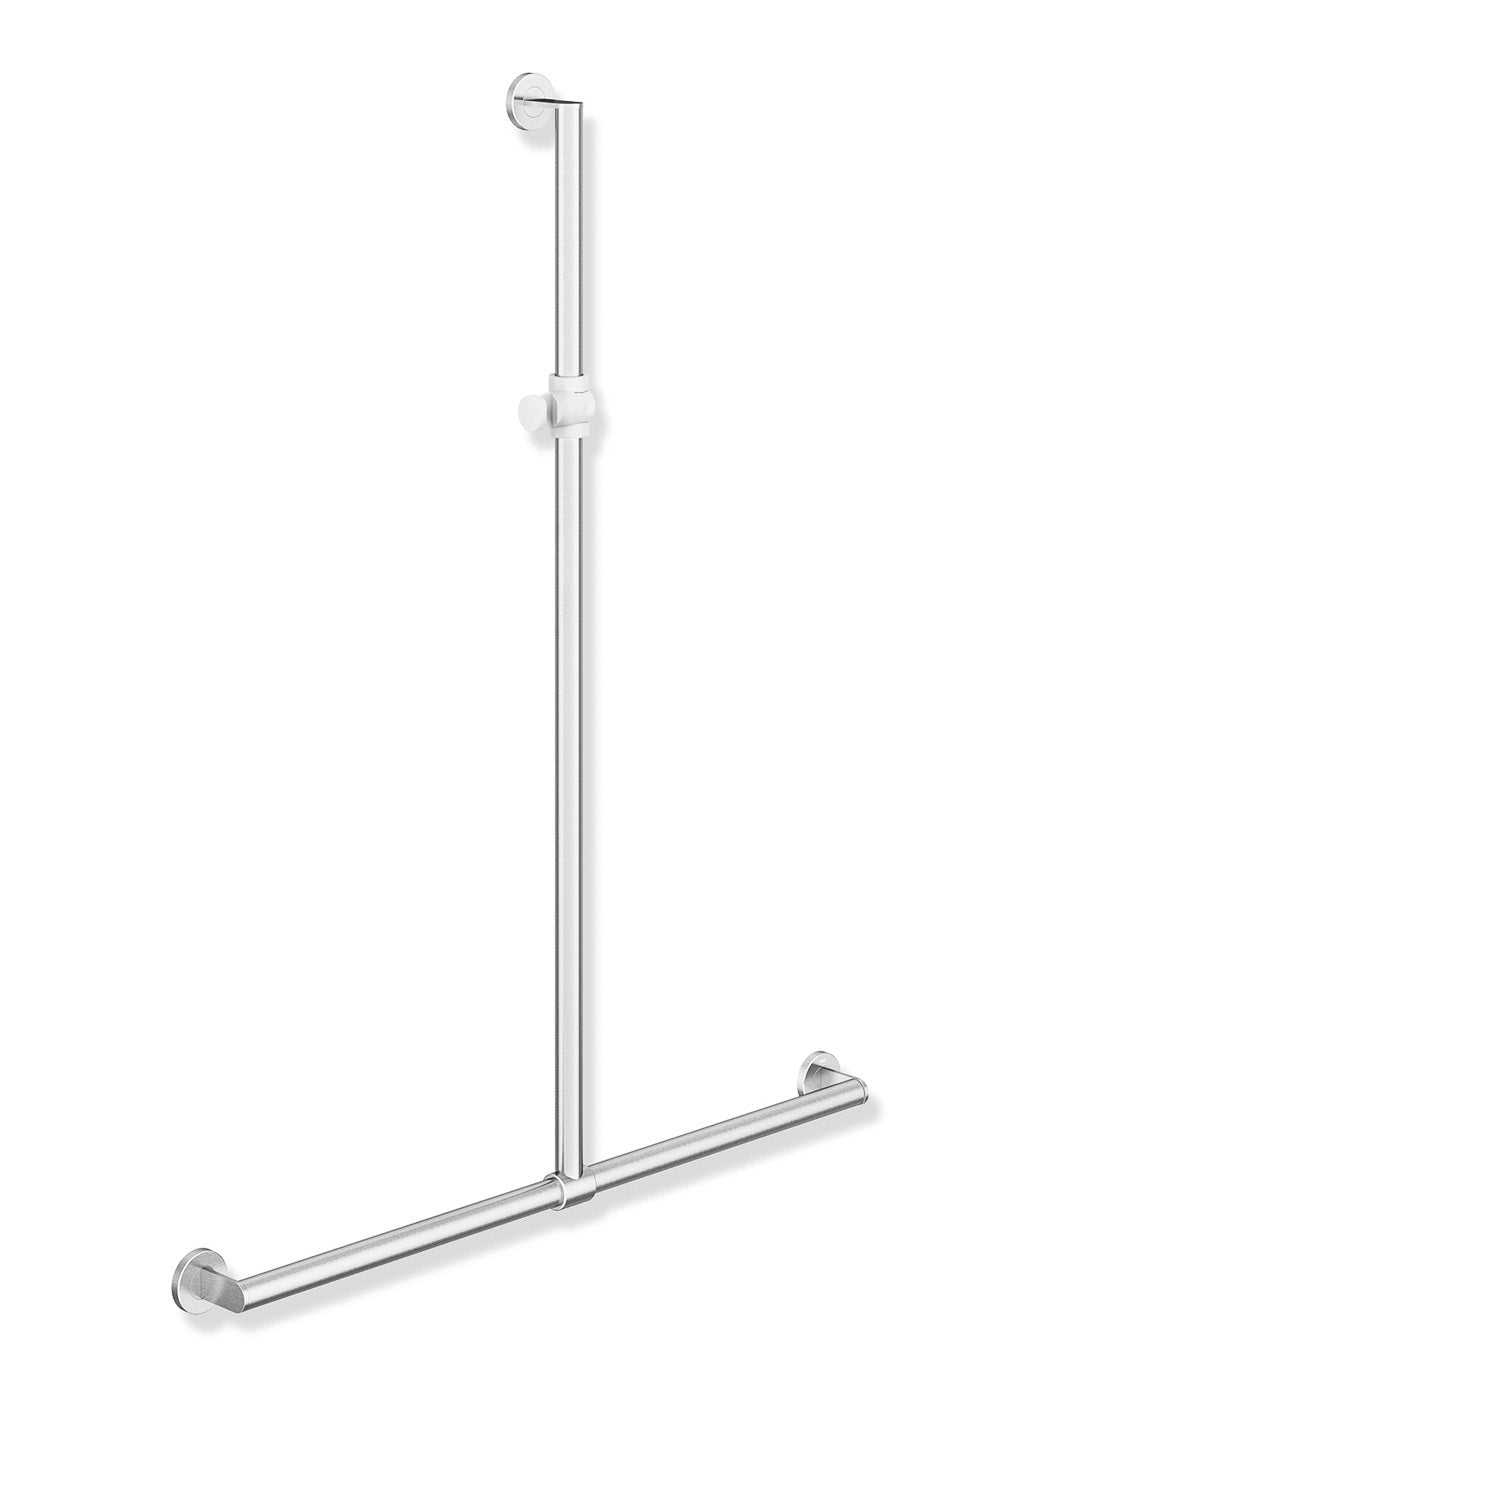 1250x1185mm Freestyle Supportive T Shaped Shower Rail with a satin steel finish on a white background